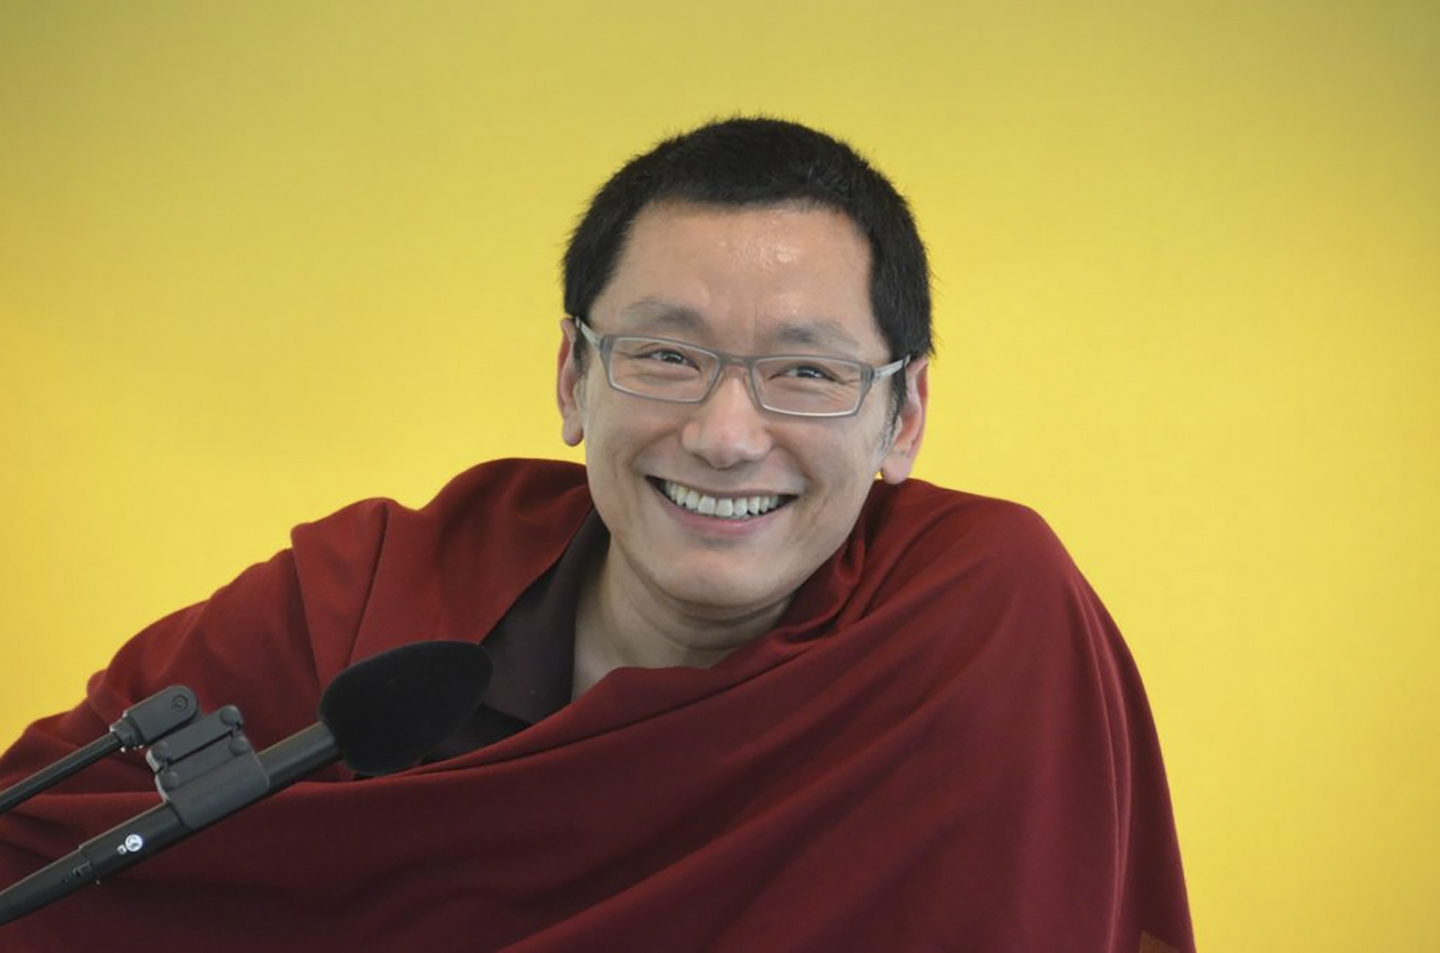 A smiling Buddhist monk with glasses